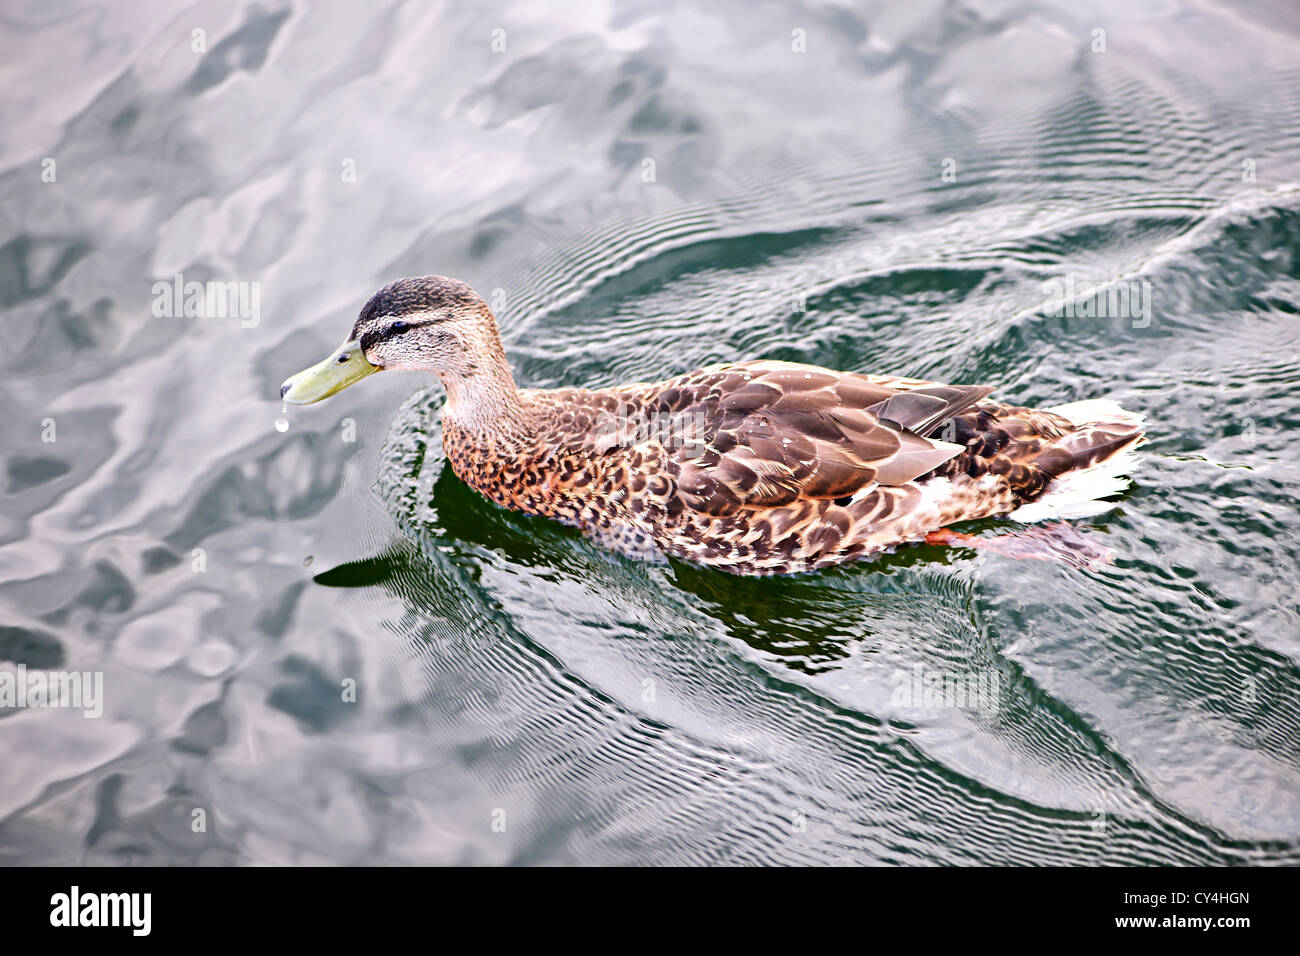 Female mallard duck swimming on calm pond with cloud reflections - Stock Image